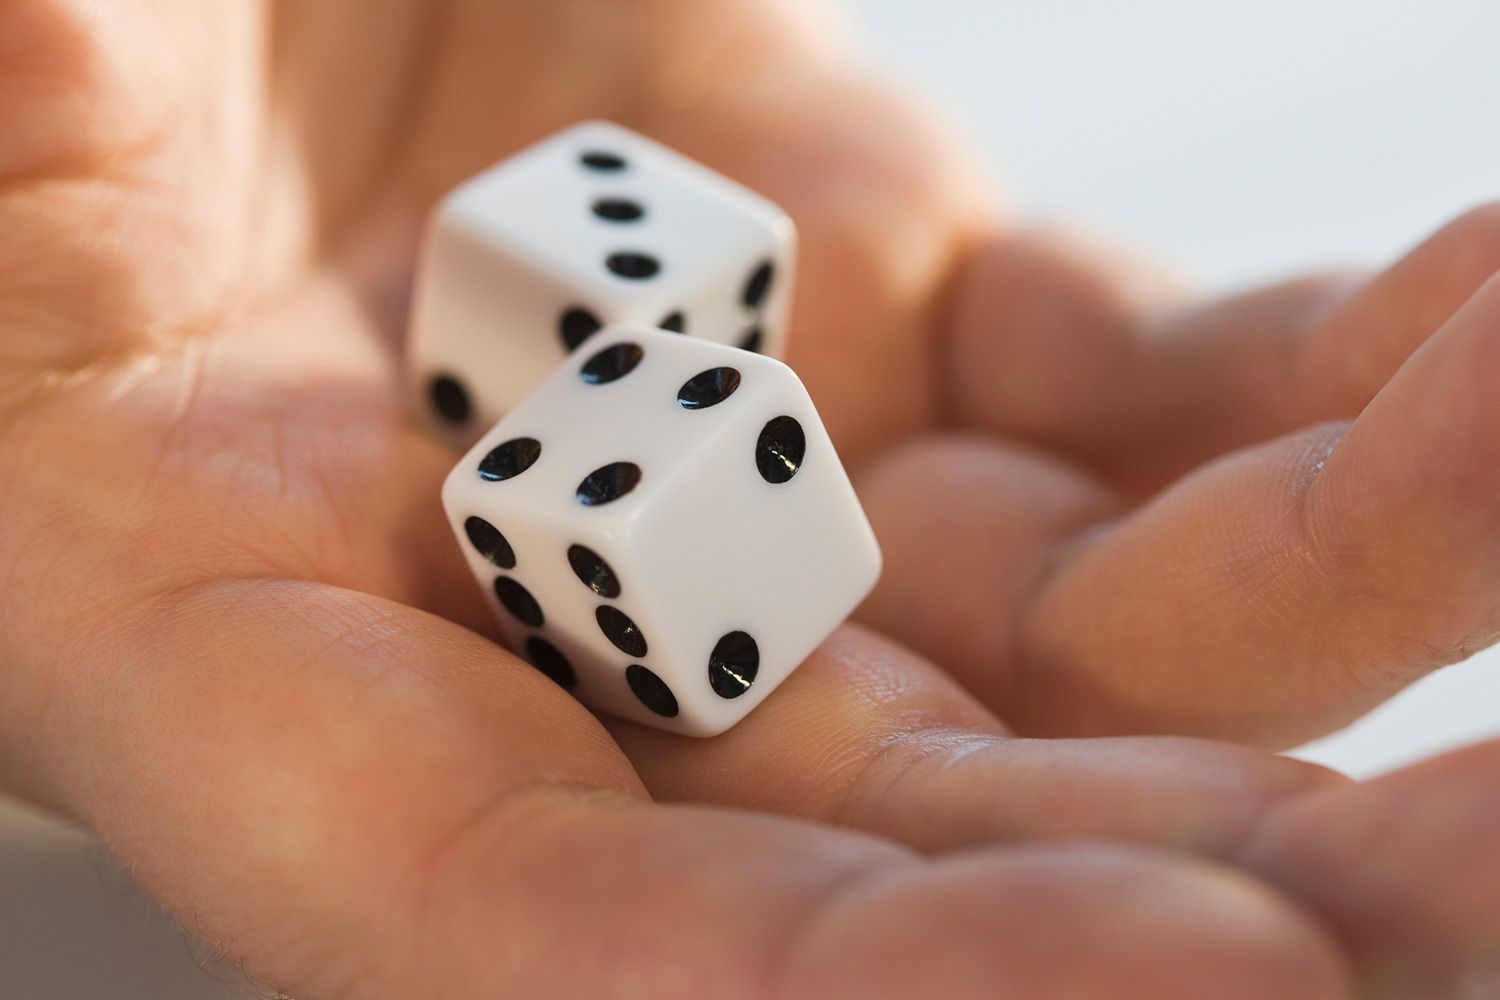 Probabilities For Rolling Two Dice